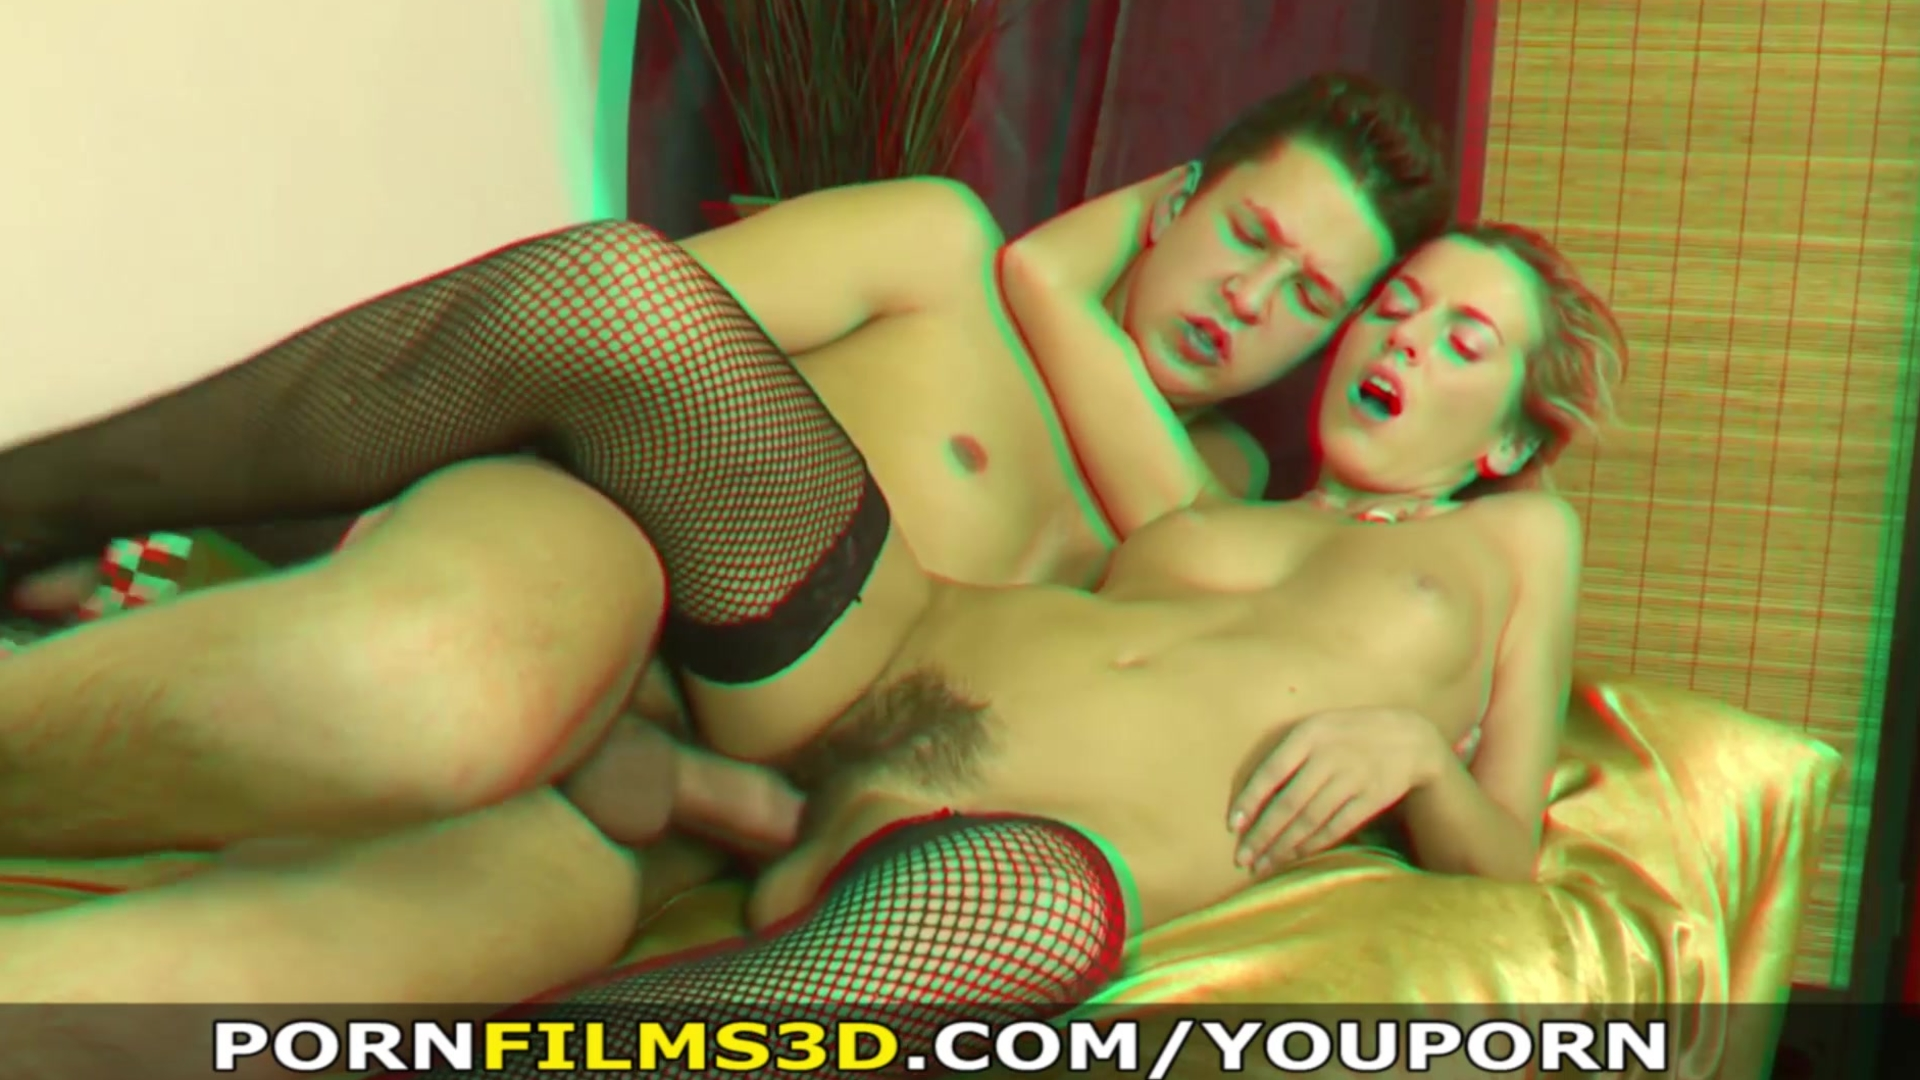 3d sex video free downlod nsfw movies